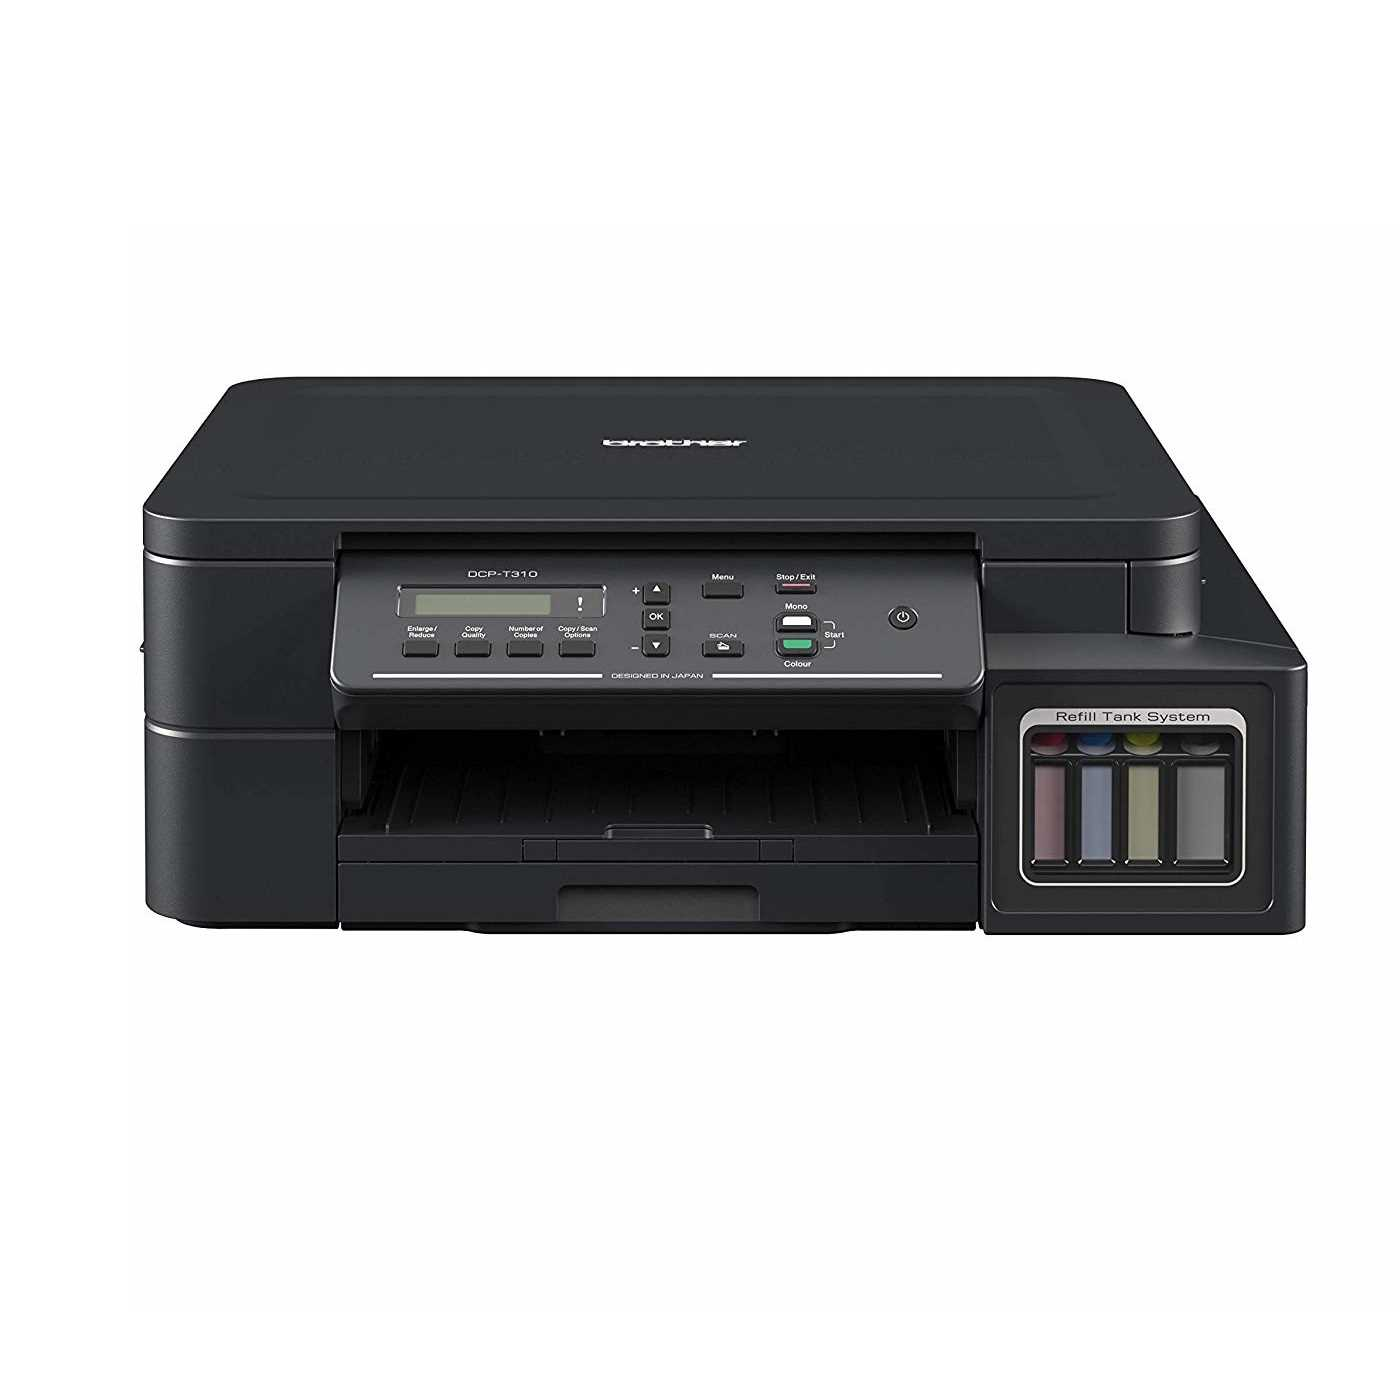 Canon Pixma G2010 Inkjet Multifunction Printer Price {12 Sep